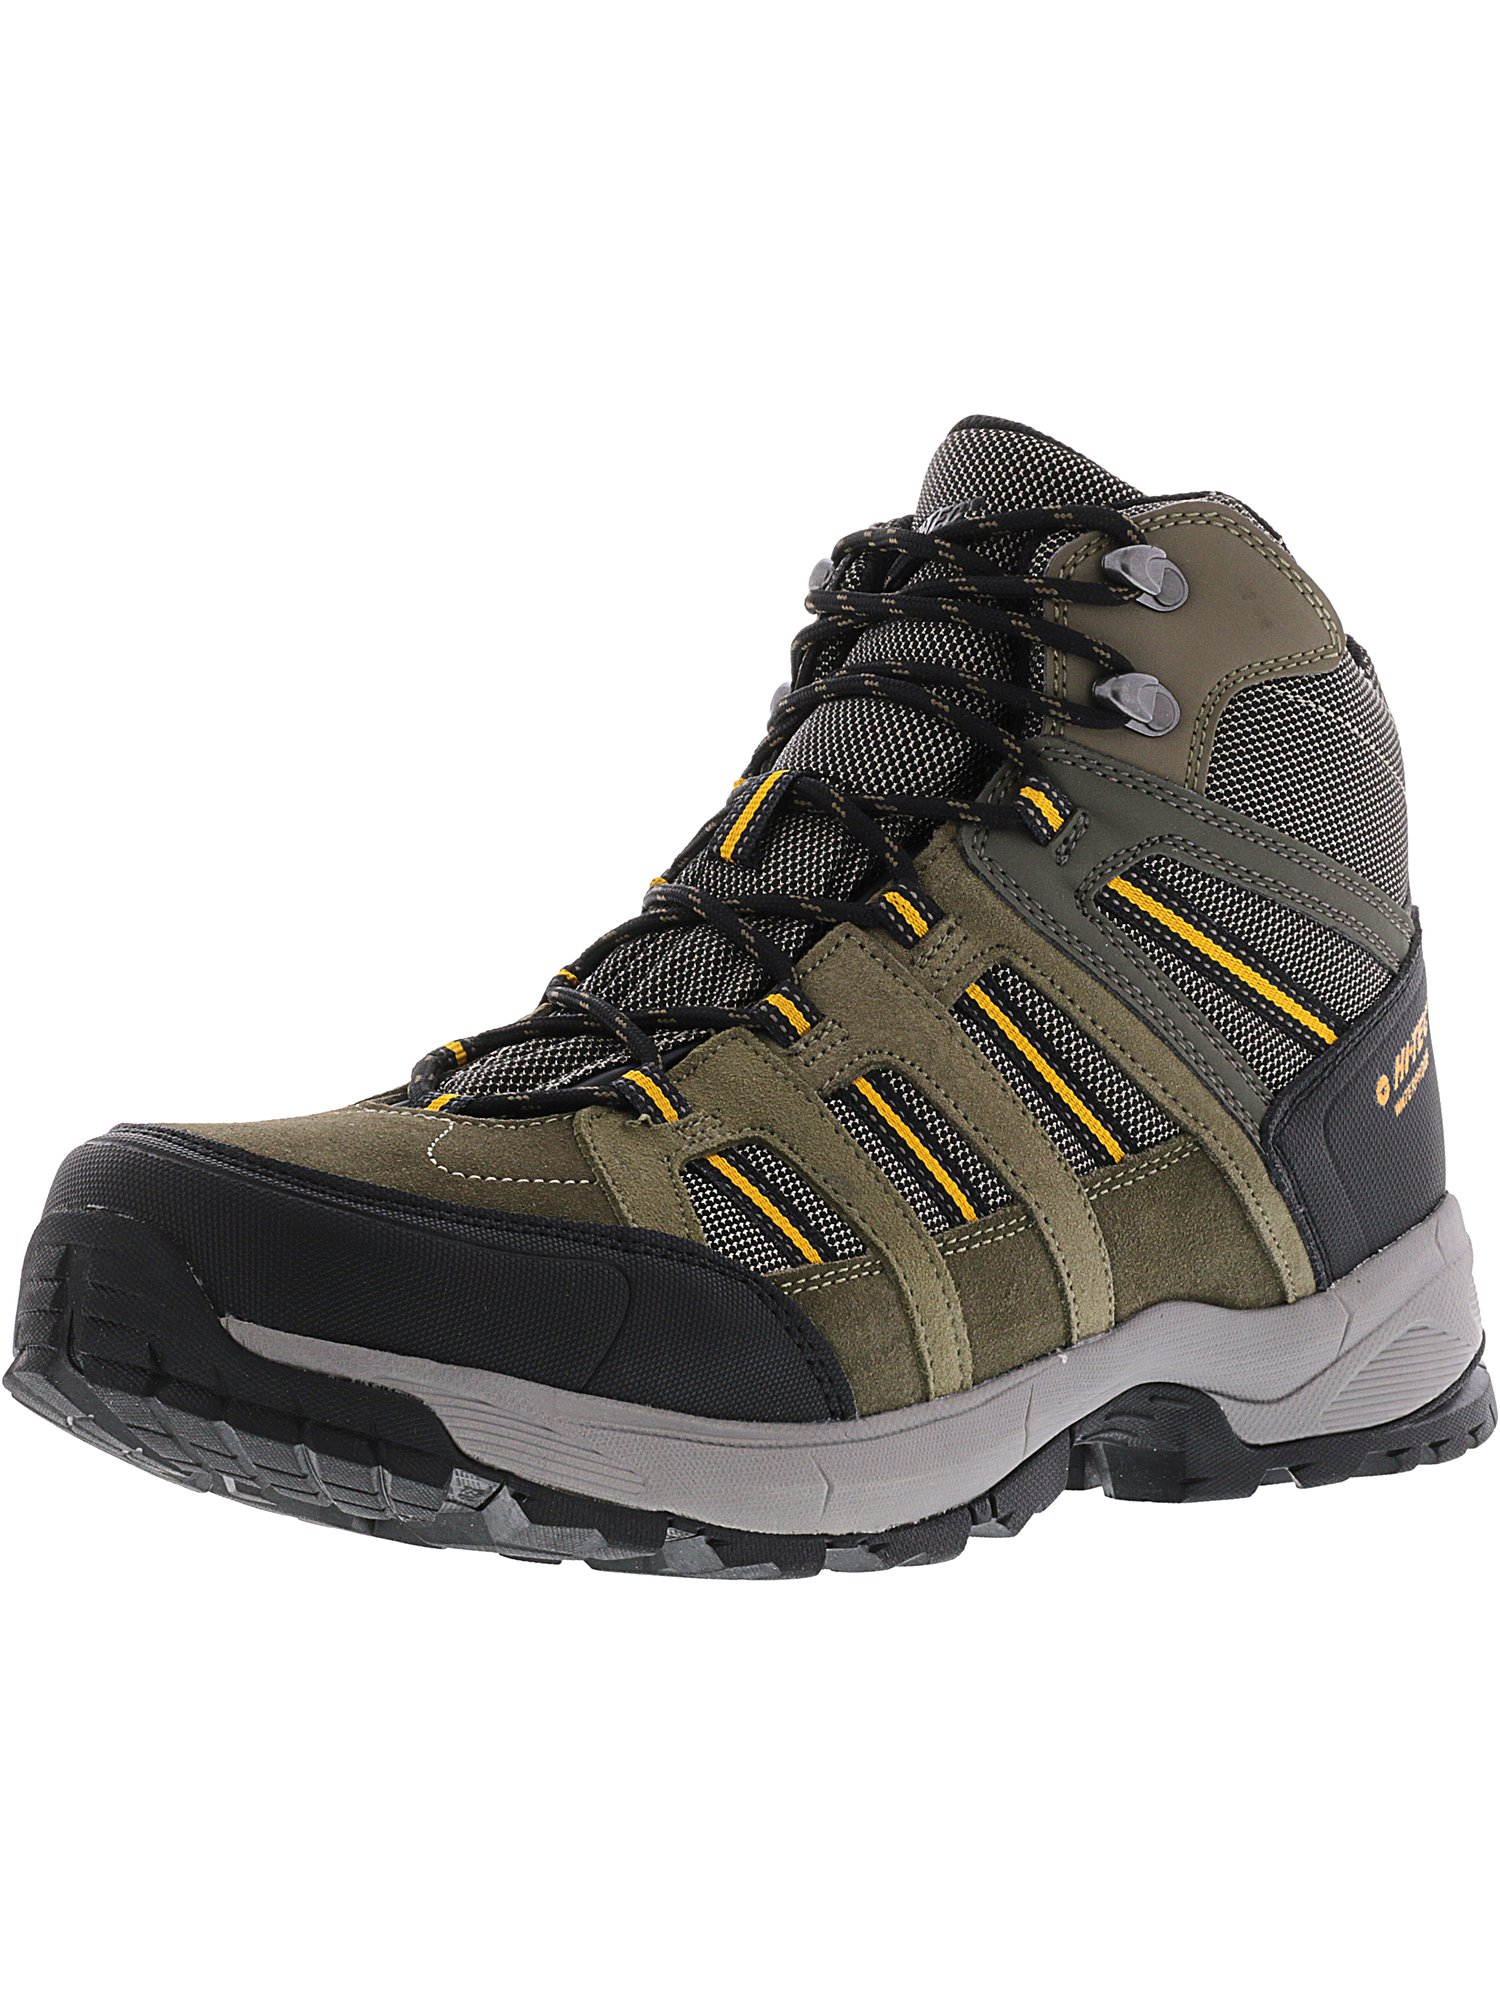 Hi-Tec Men's Galveston Mid Waterproof Taupe   Dark Core Gold Ankle-High Suede Hiking Boot 13M by Hi-Tec